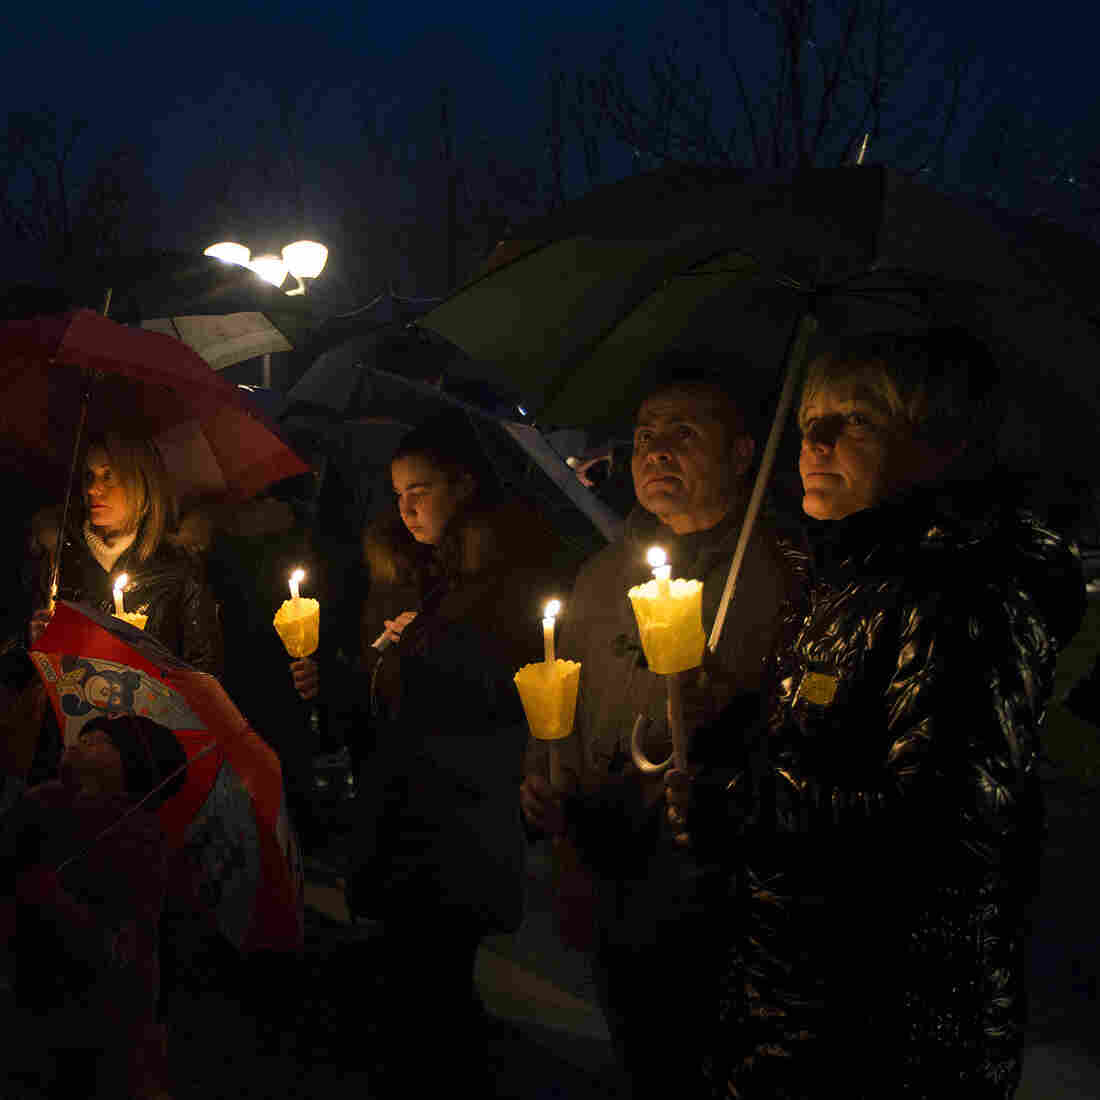 People gathered during a candlelight procession to honor the memory of Giulio Regeni in his hometown of Fiumicello, Italy, on Sunday.